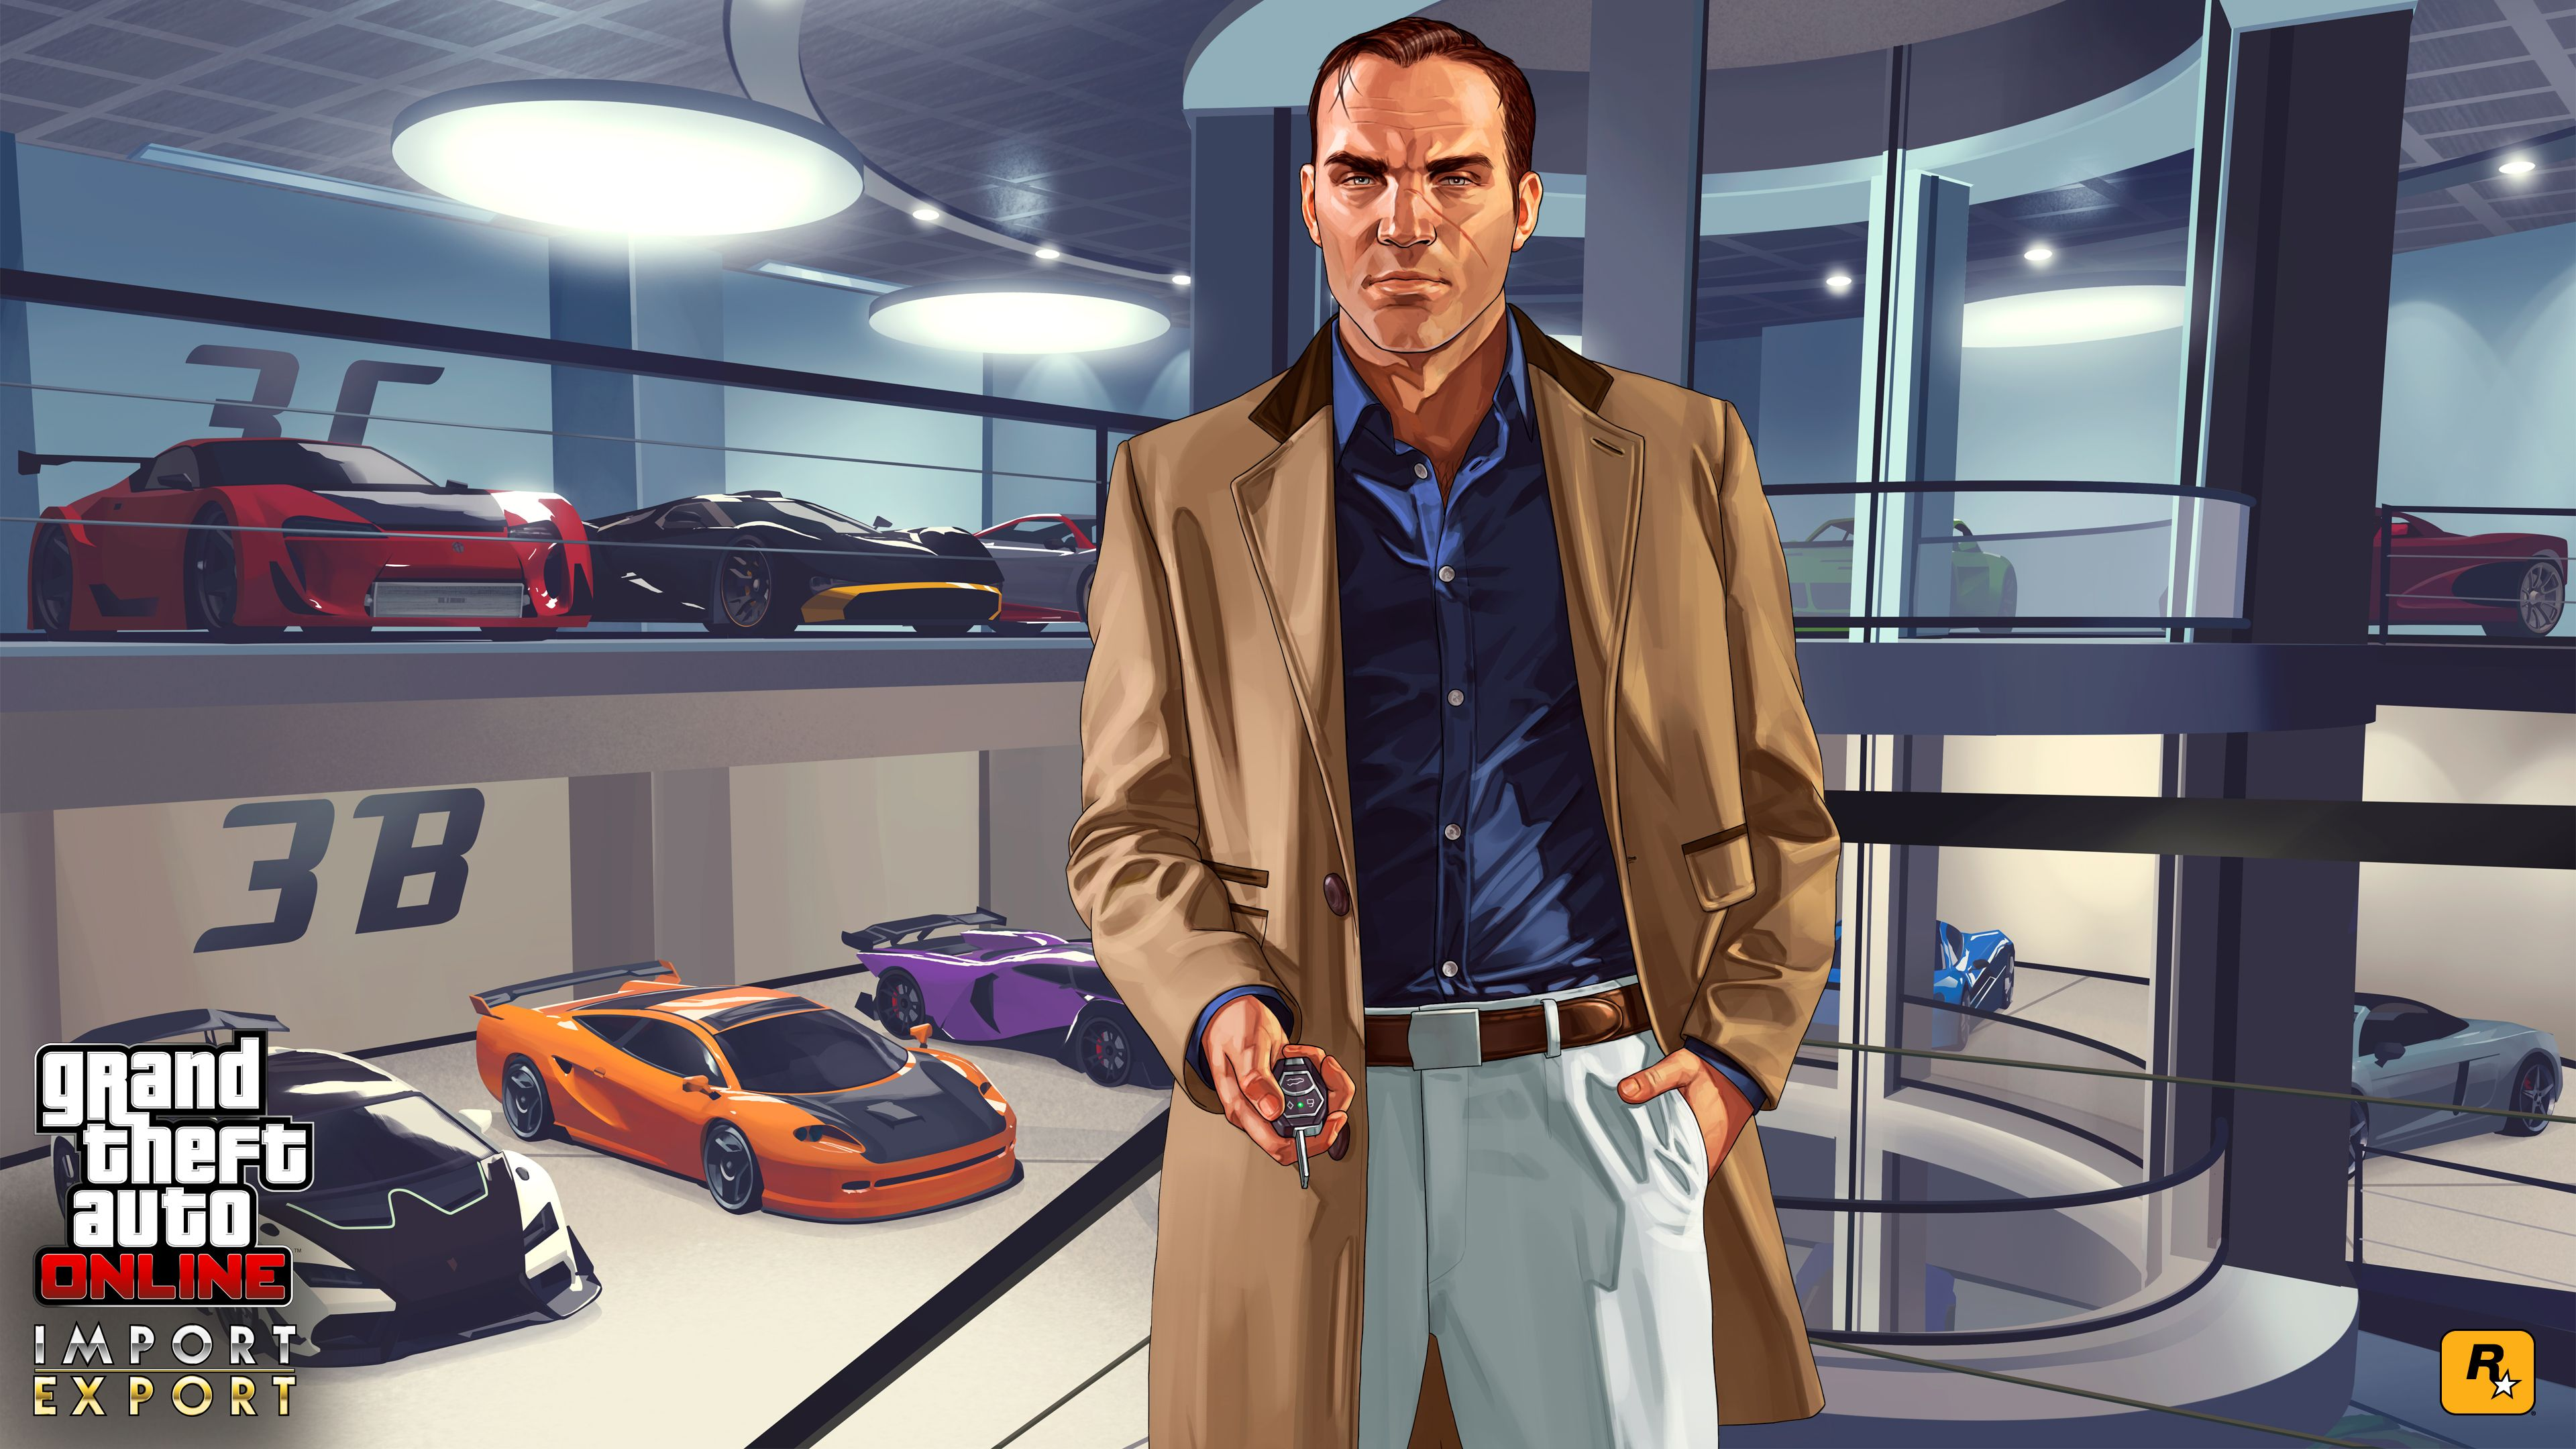 The Fastest Cars Of Grand Theft Auto V In 2020 Gta Online Gta Grand Theft Auto